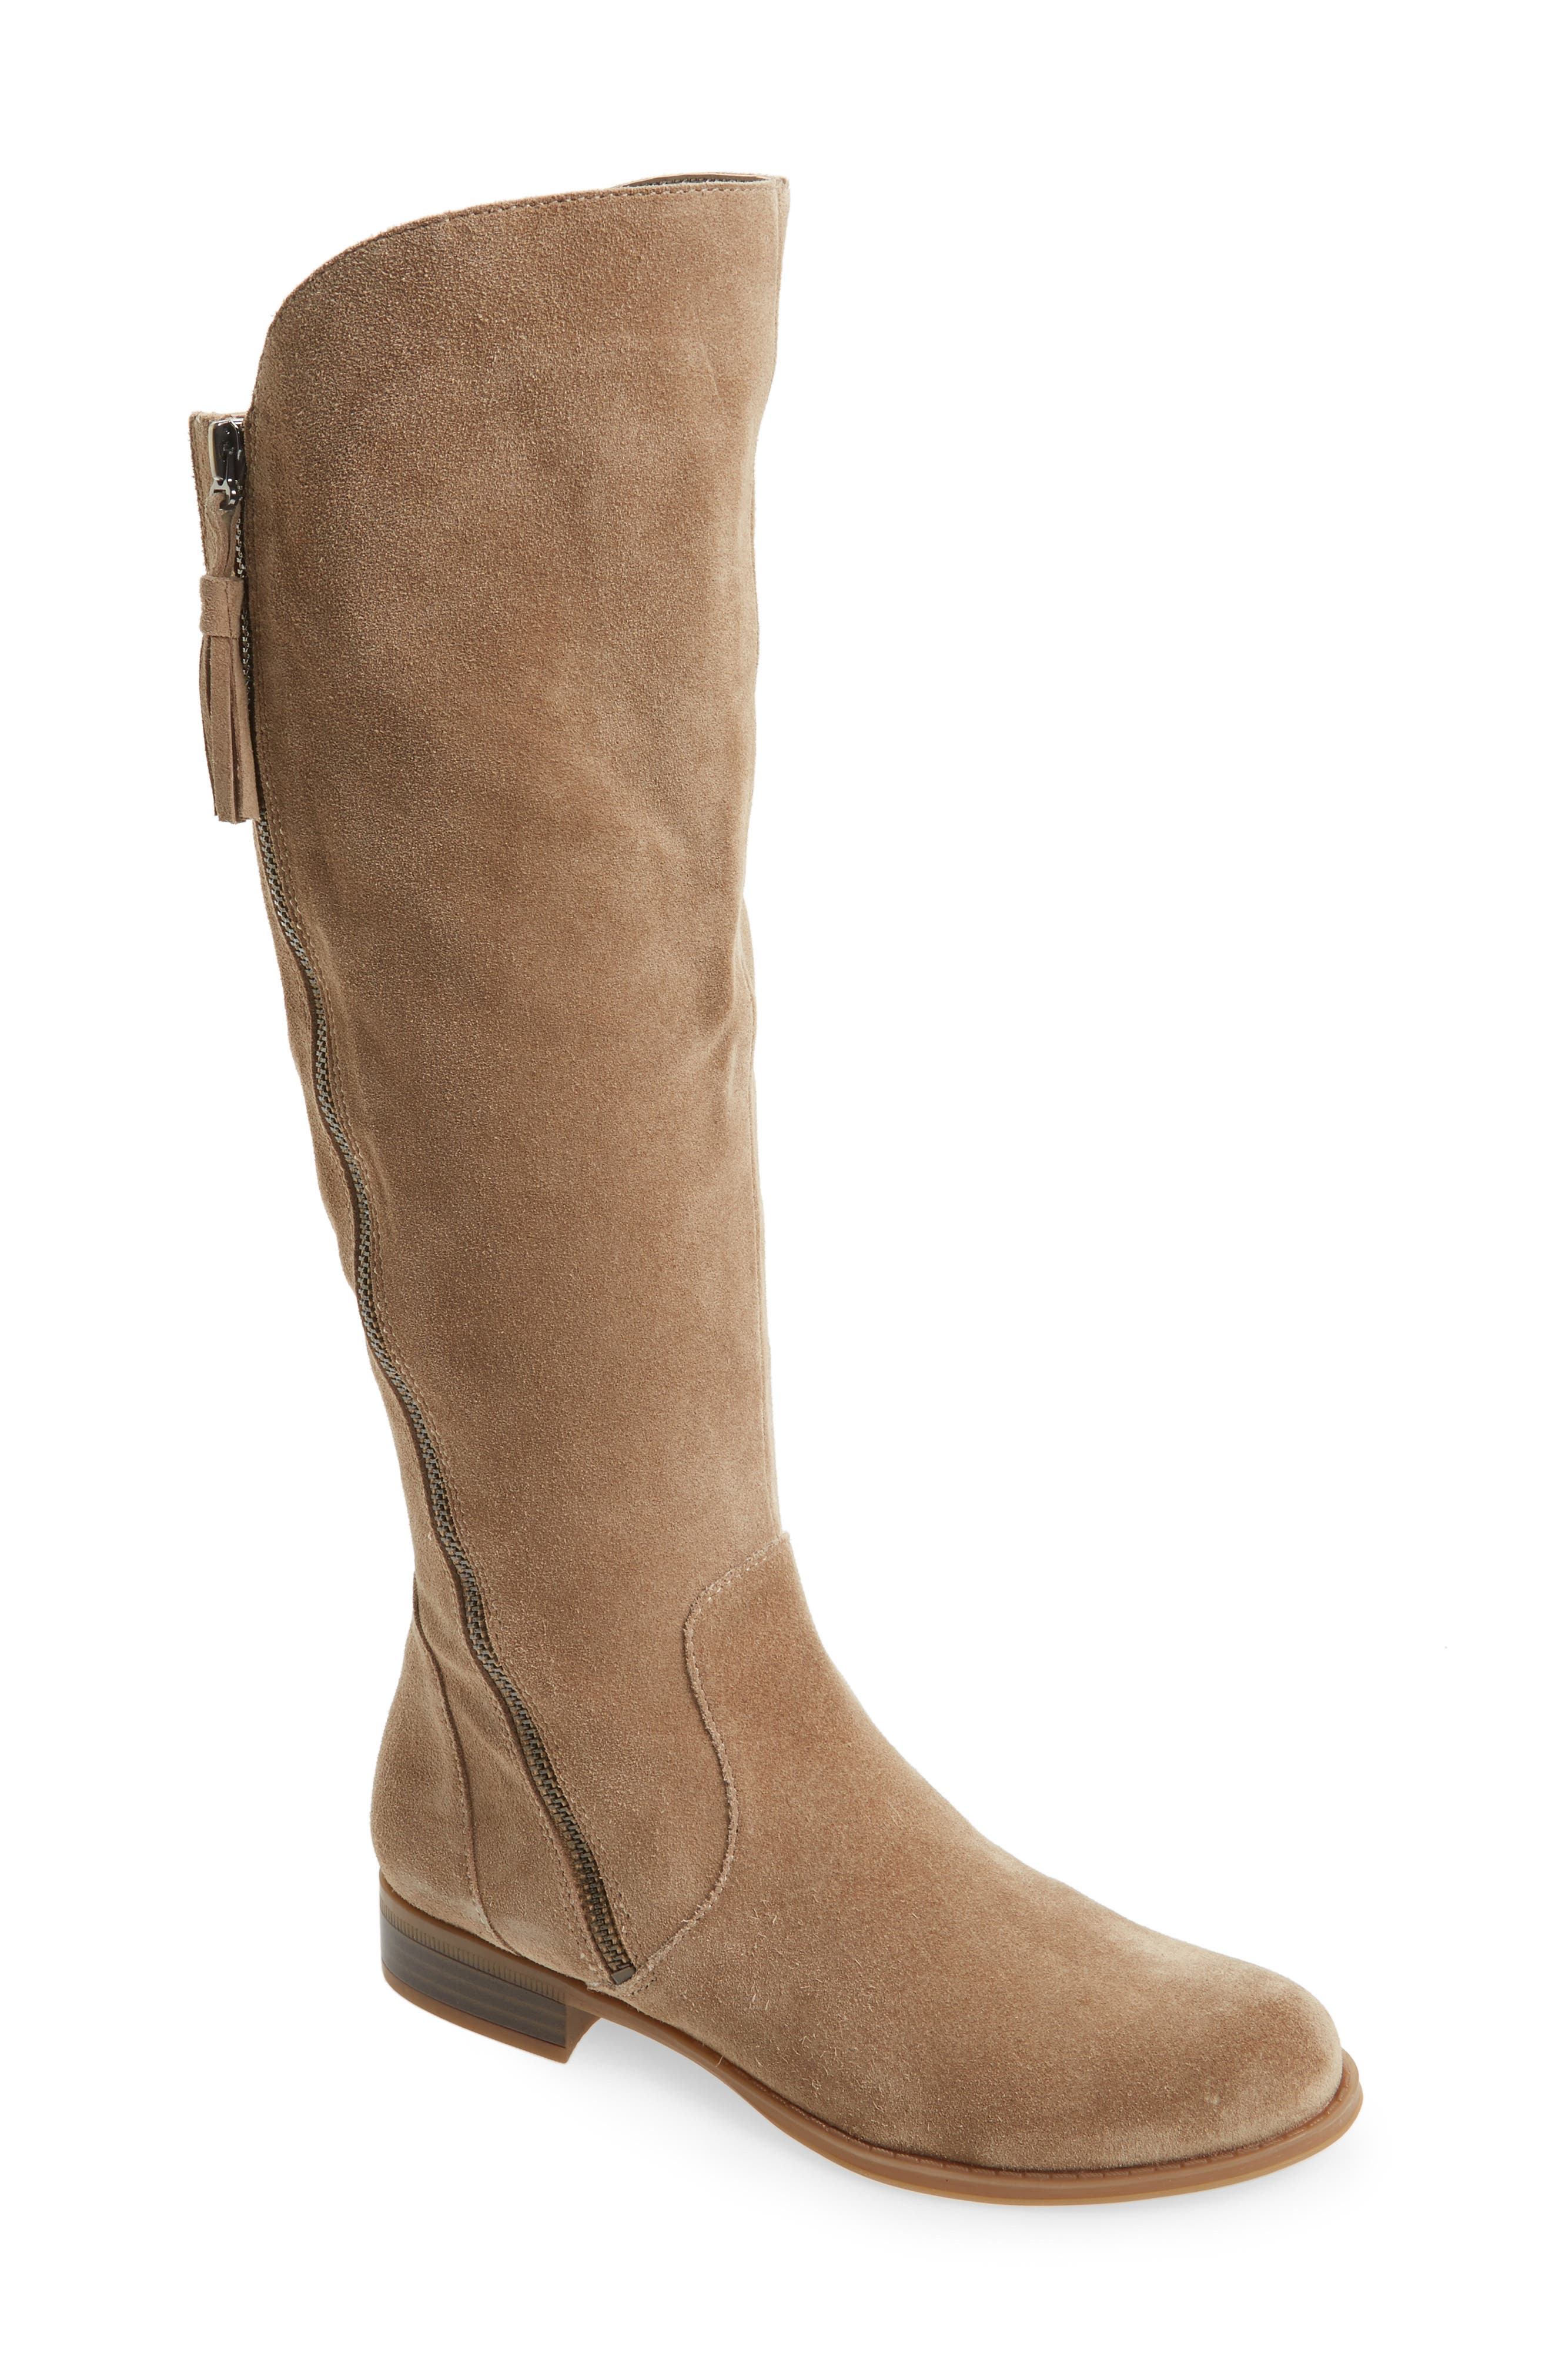 Jinnie Tall Boot,                             Main thumbnail 1, color,                             Oatmeal Suede